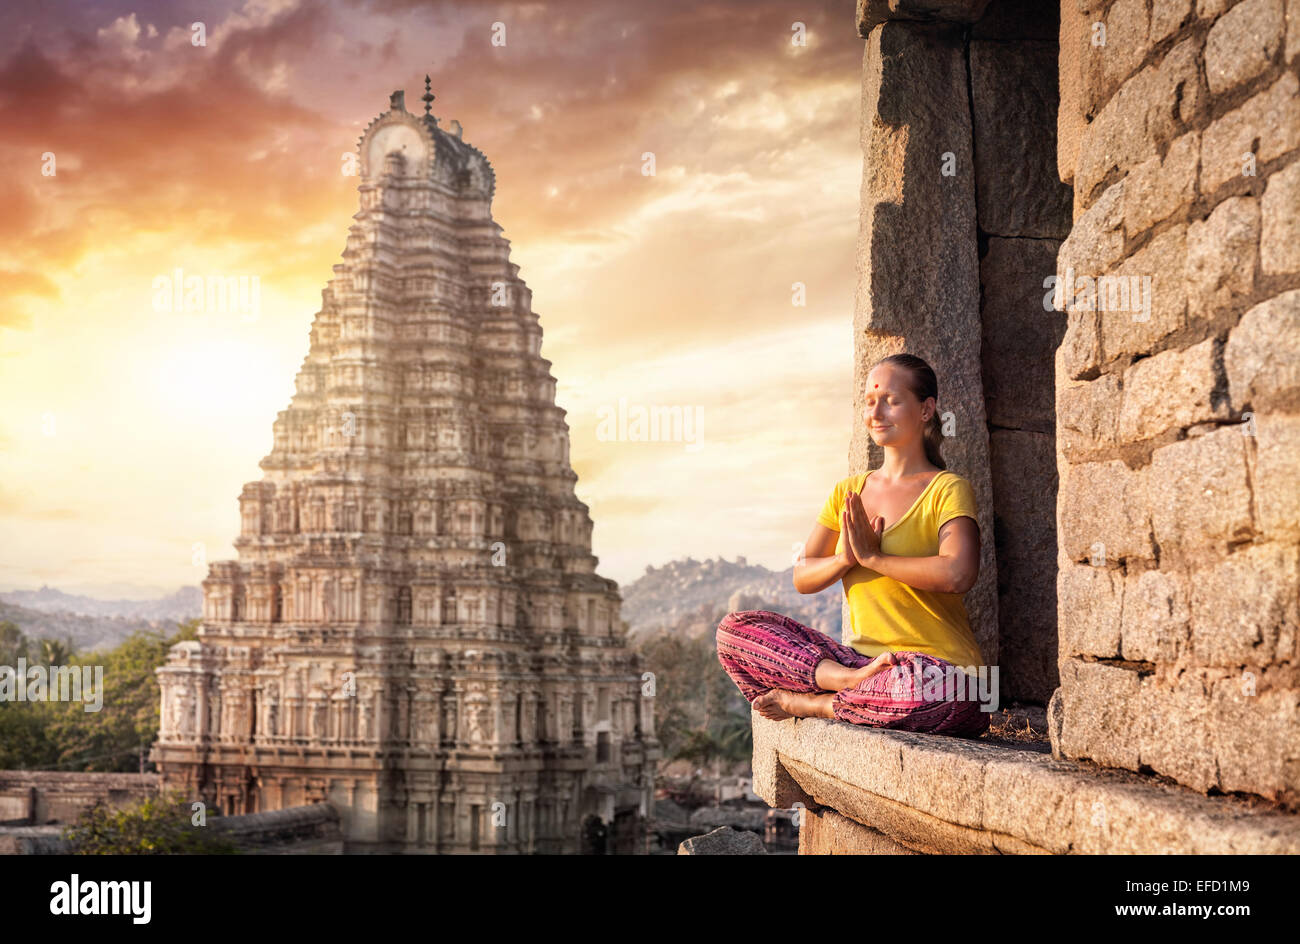 Woman with Namaste mudra sitting near Virupaksha temple in Hampi, Karnataka, India - Stock Image